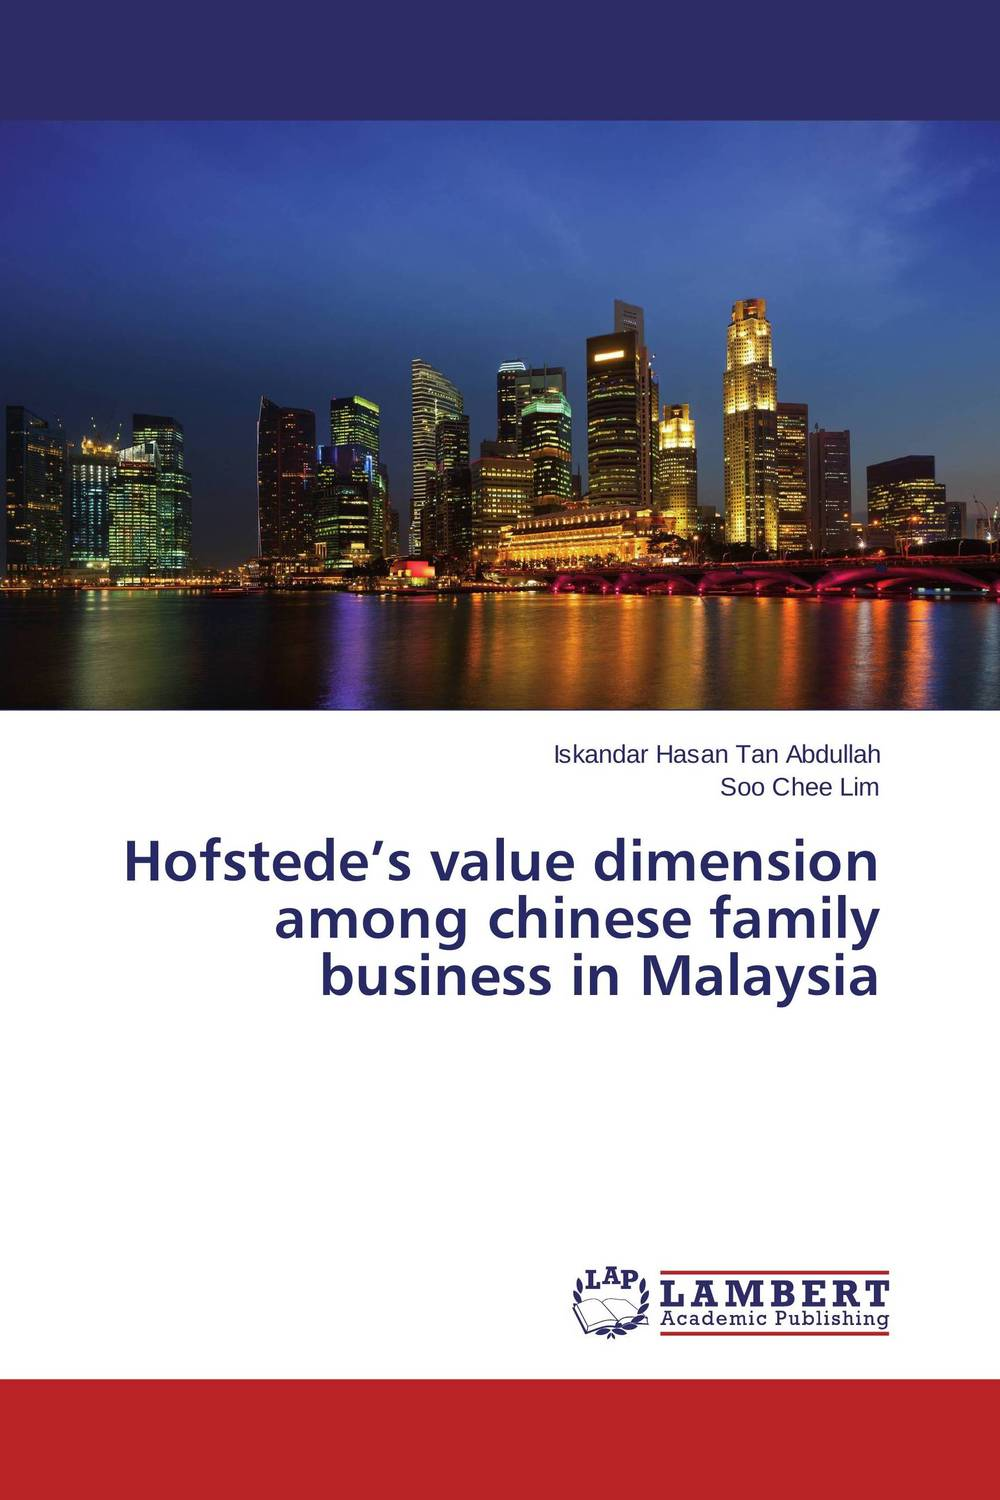 Hofstede's value dimension among chinese family business in Malaysia changing attitude of family towards women in family business